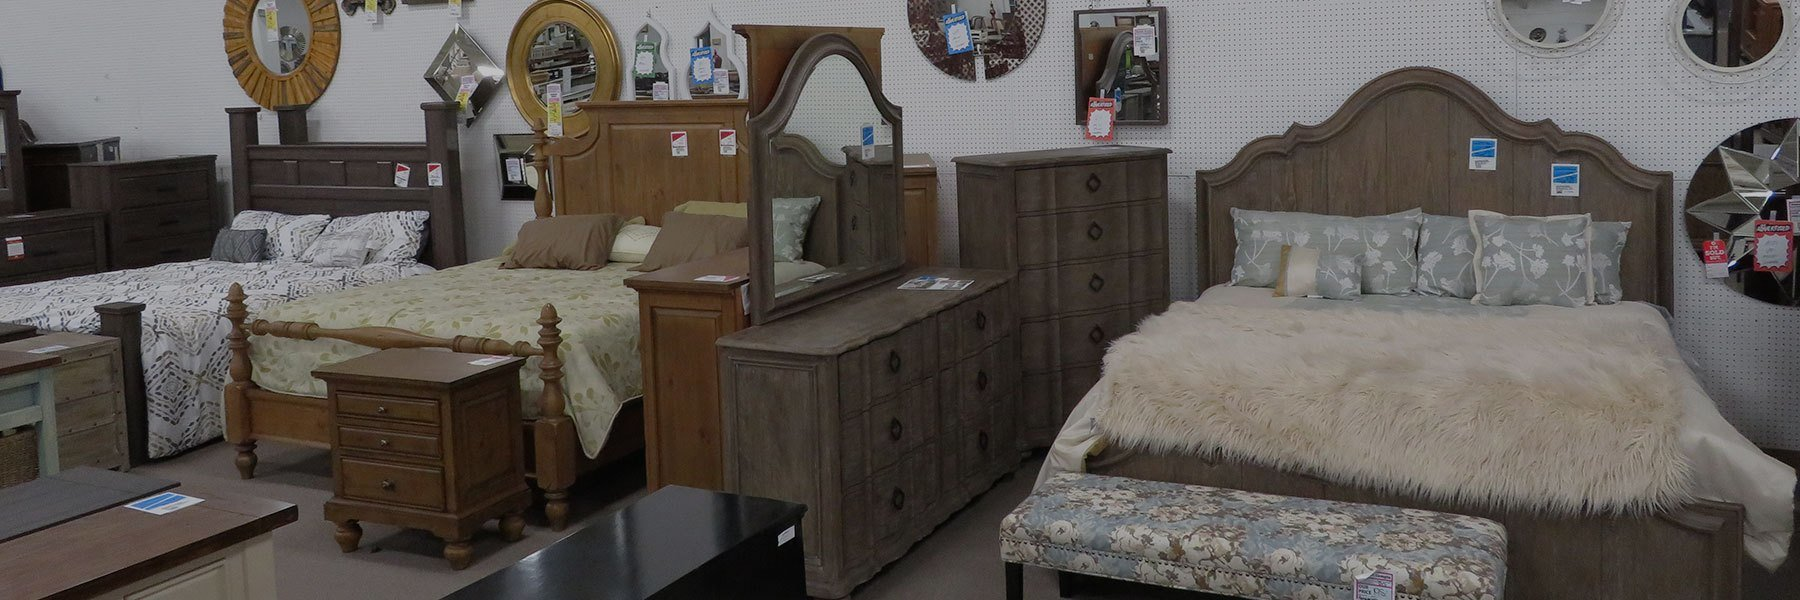 Best Raleigh Furniture Store For Bedroom Living Dining Room With Pictures